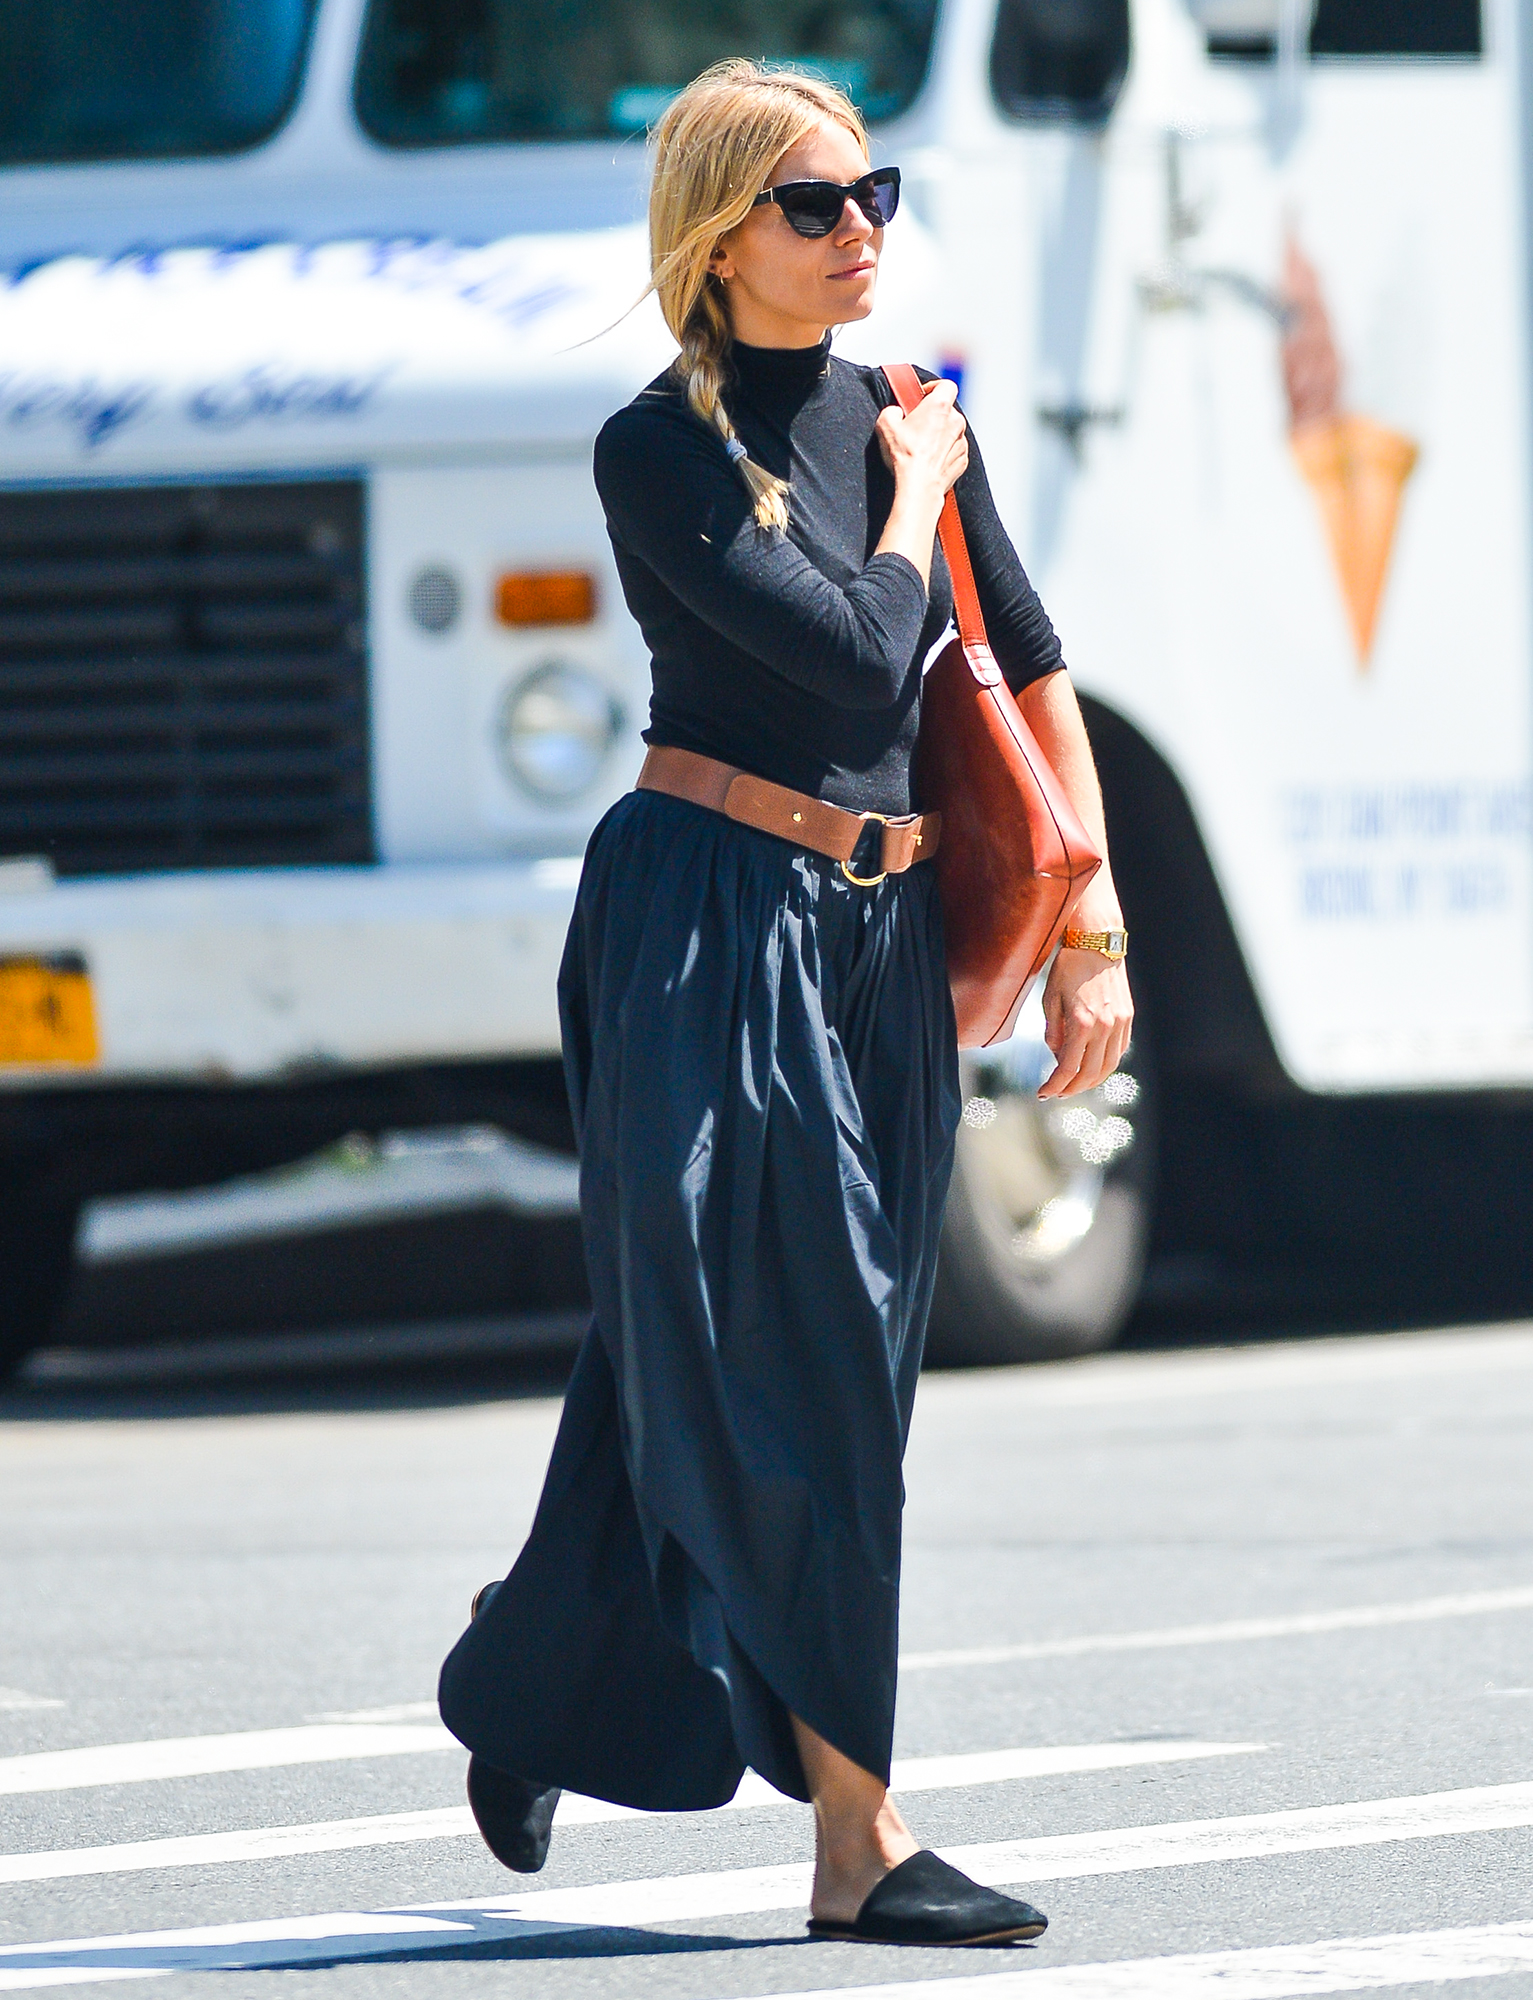 Sienna Miller Appears to Have a Great Time While Out to Lunch with a Mystery Man in New York City